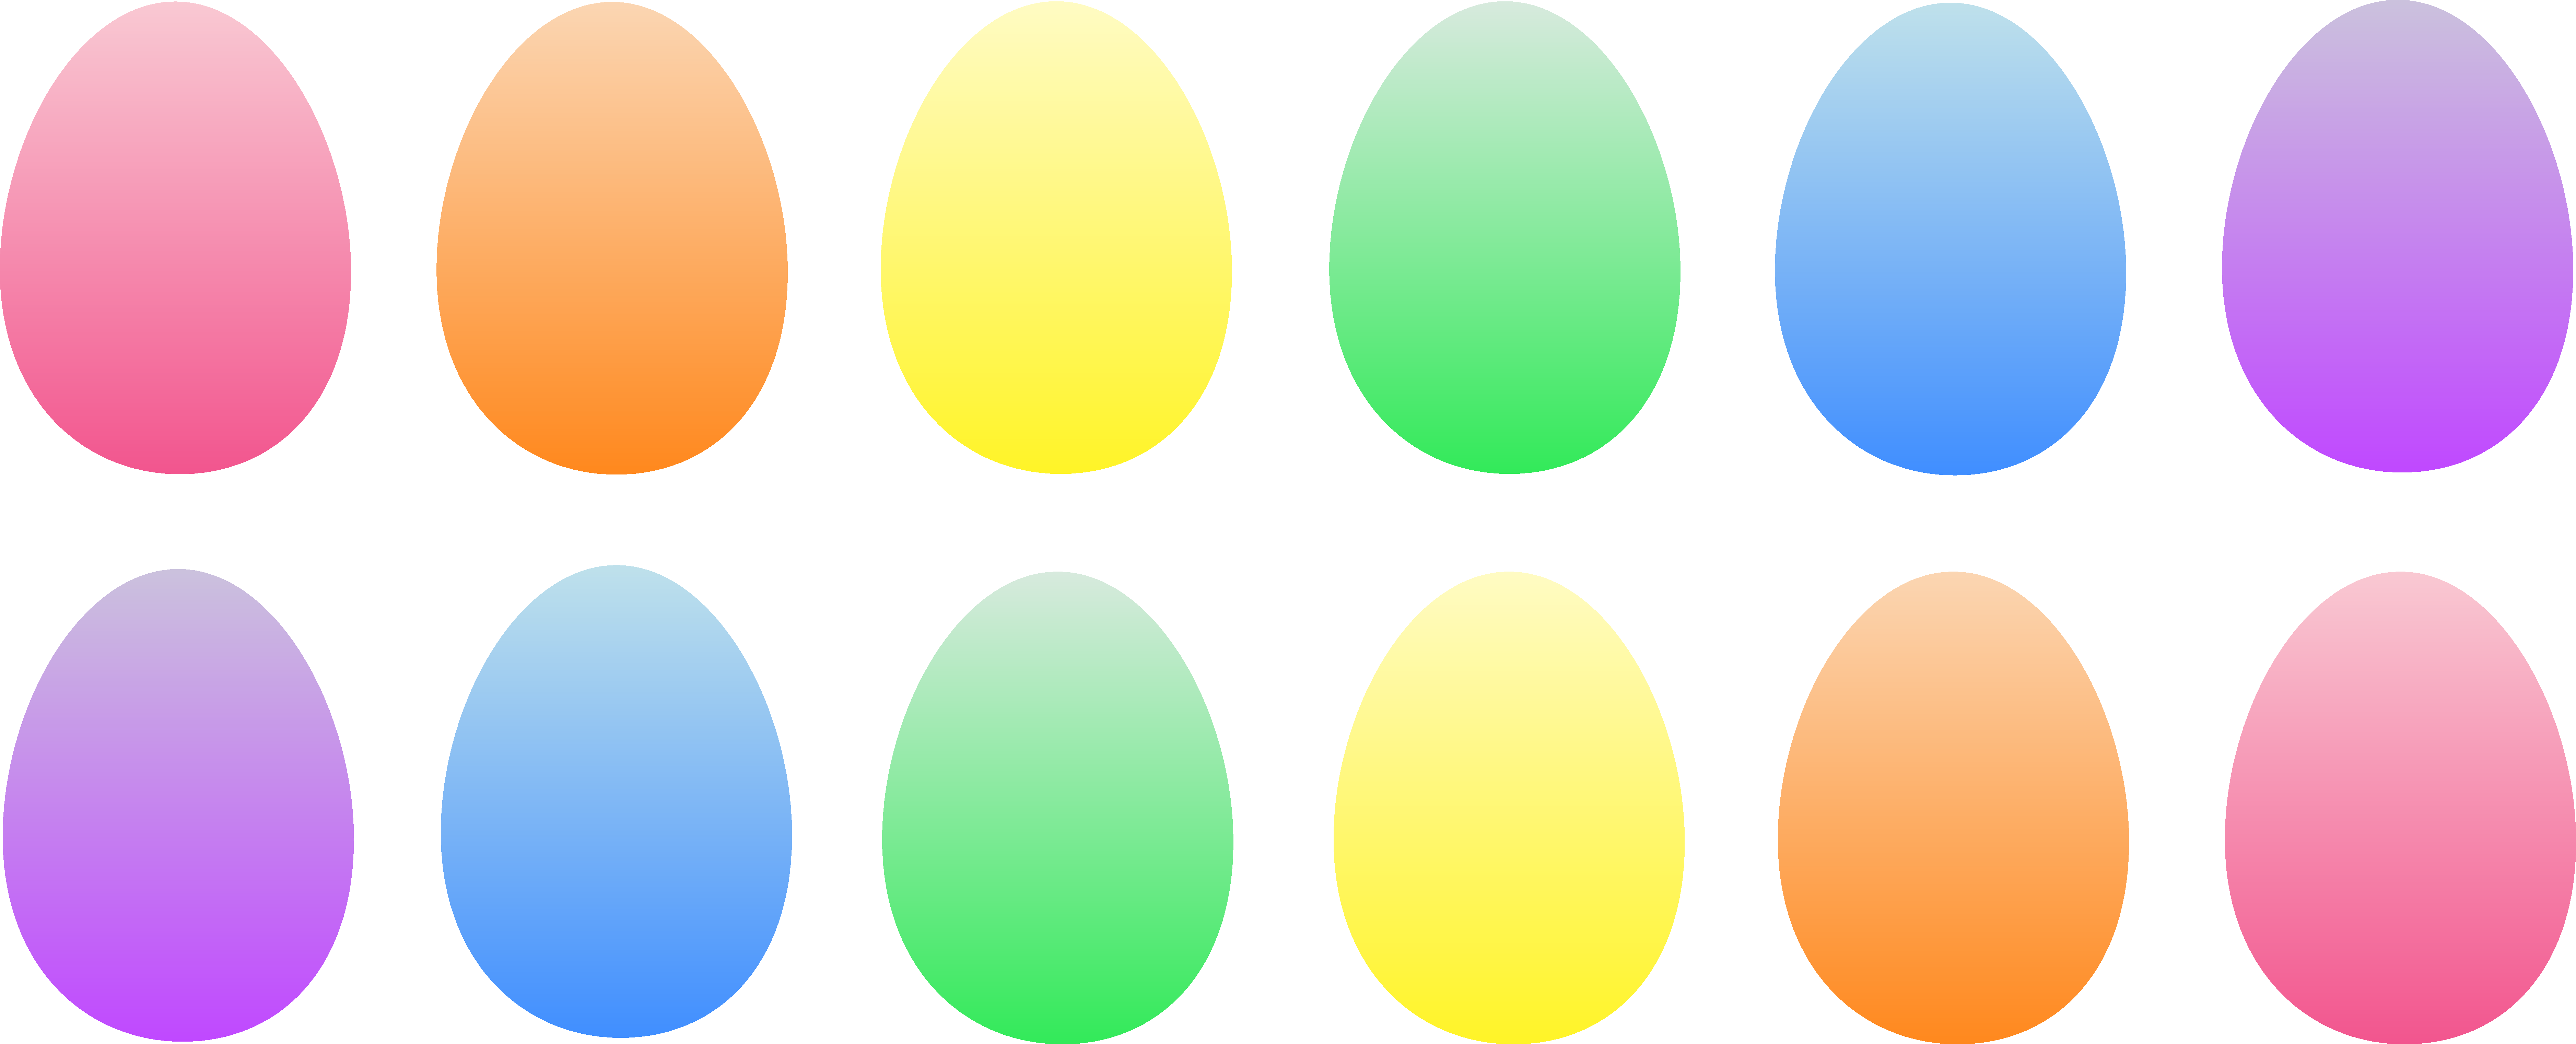 eggs vector dozen egg